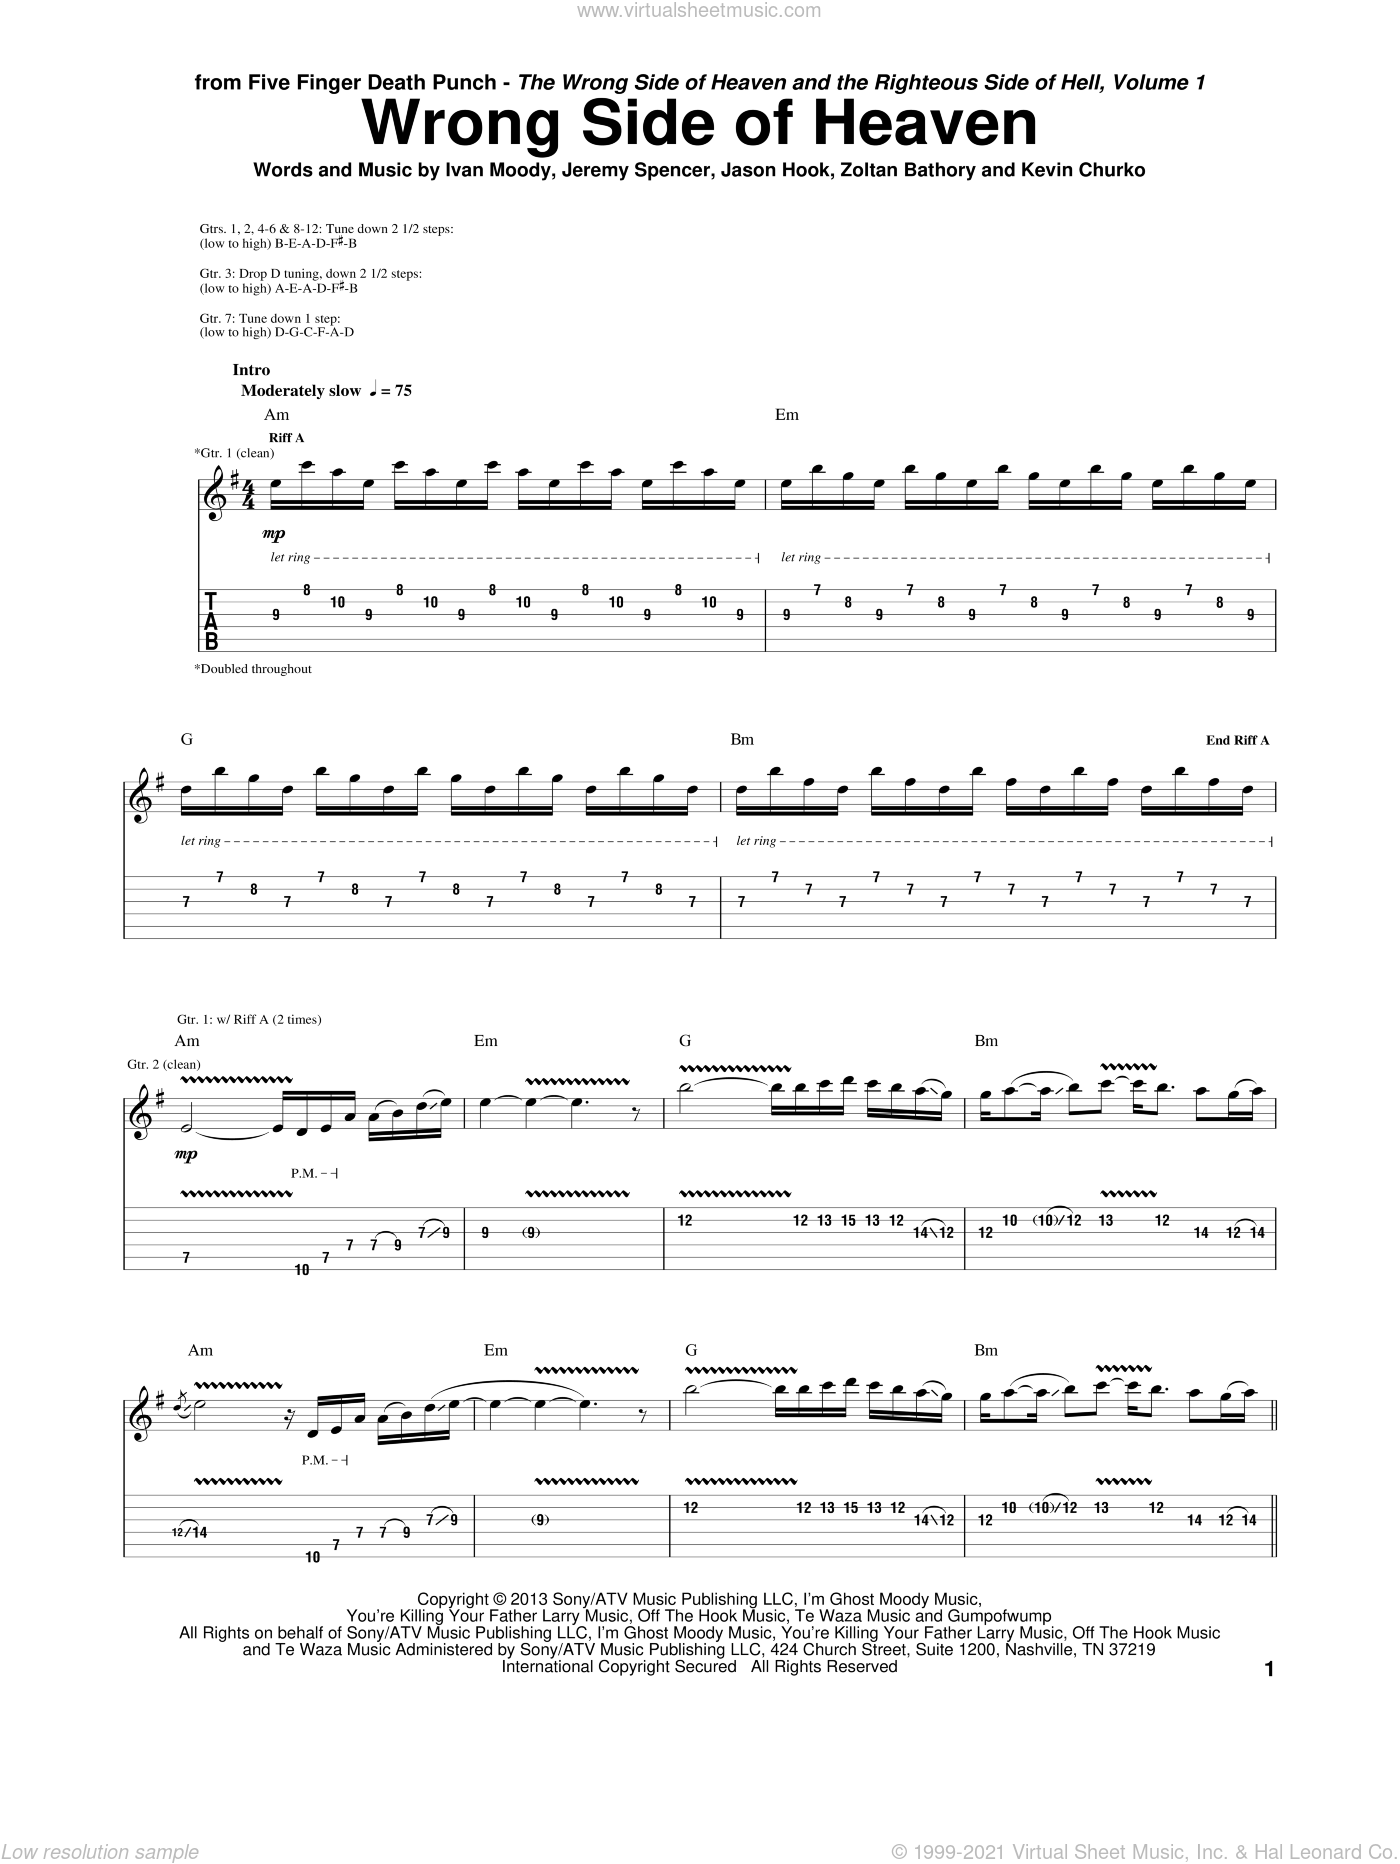 Wrong Side Of Heaven sheet music for guitar (tablature) by Zoltan Bathory